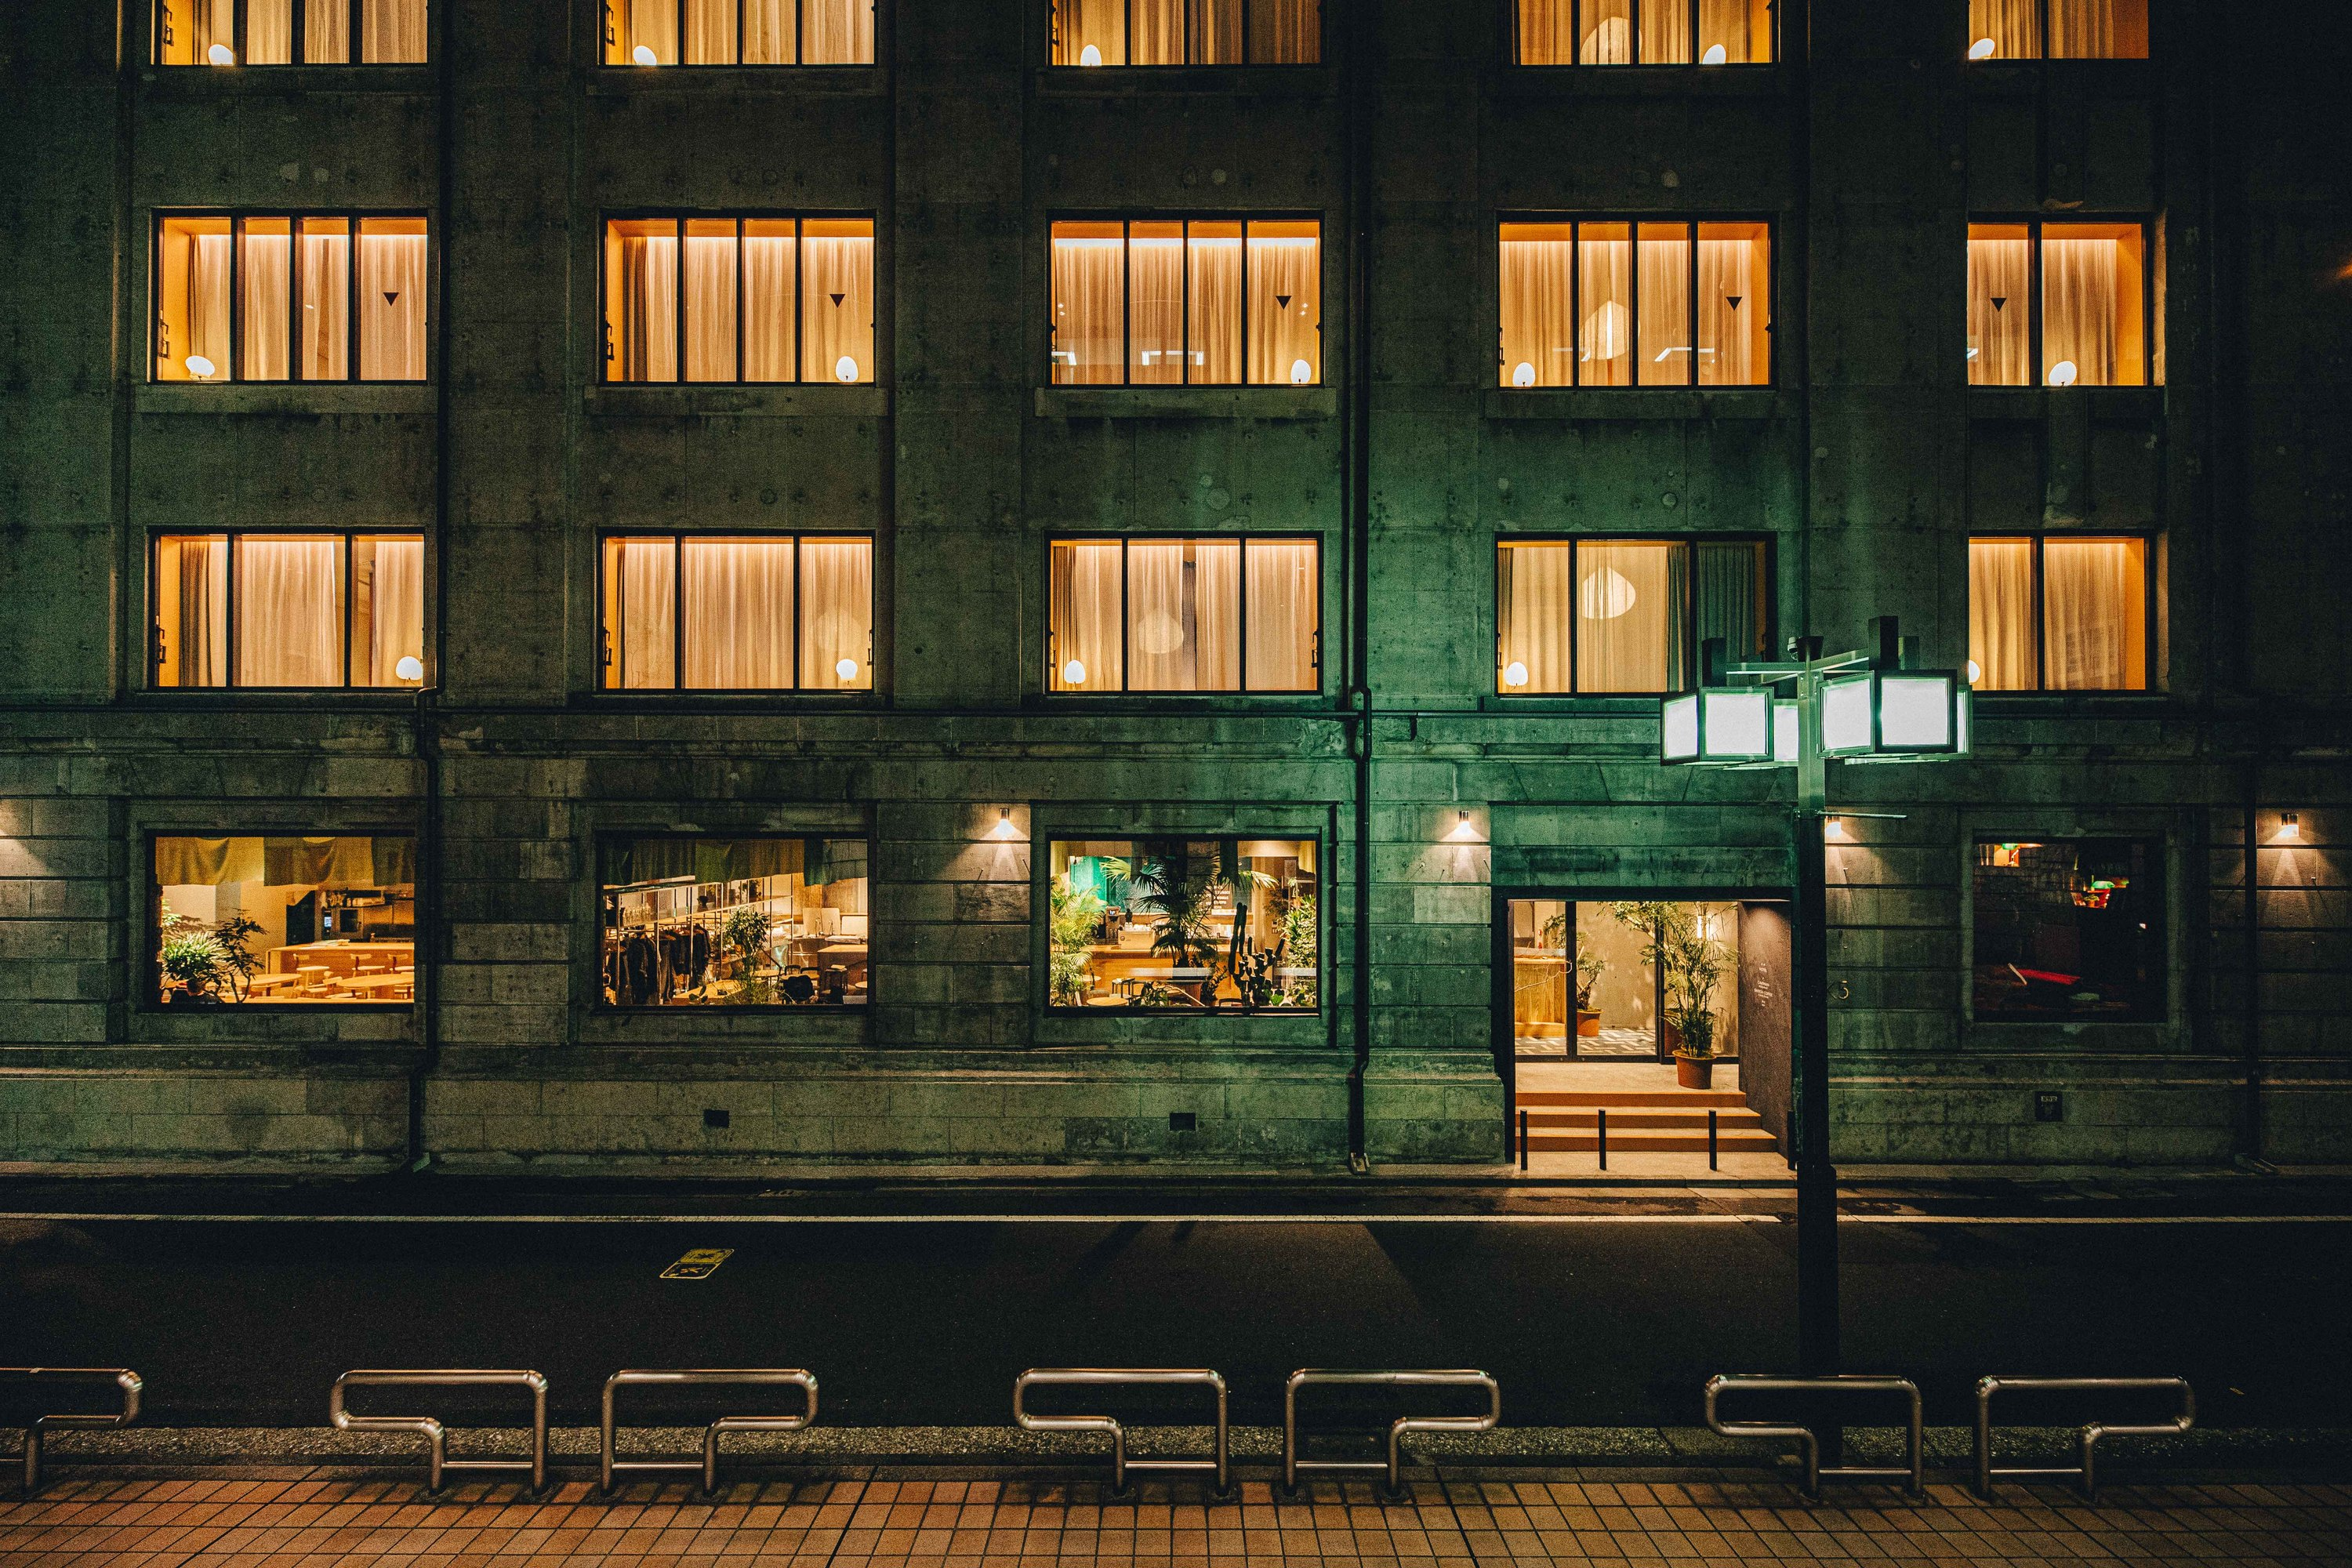 K5 transforms a 1920s bank in Nihonbashi into a trendy hangout with café, restaurant and bars